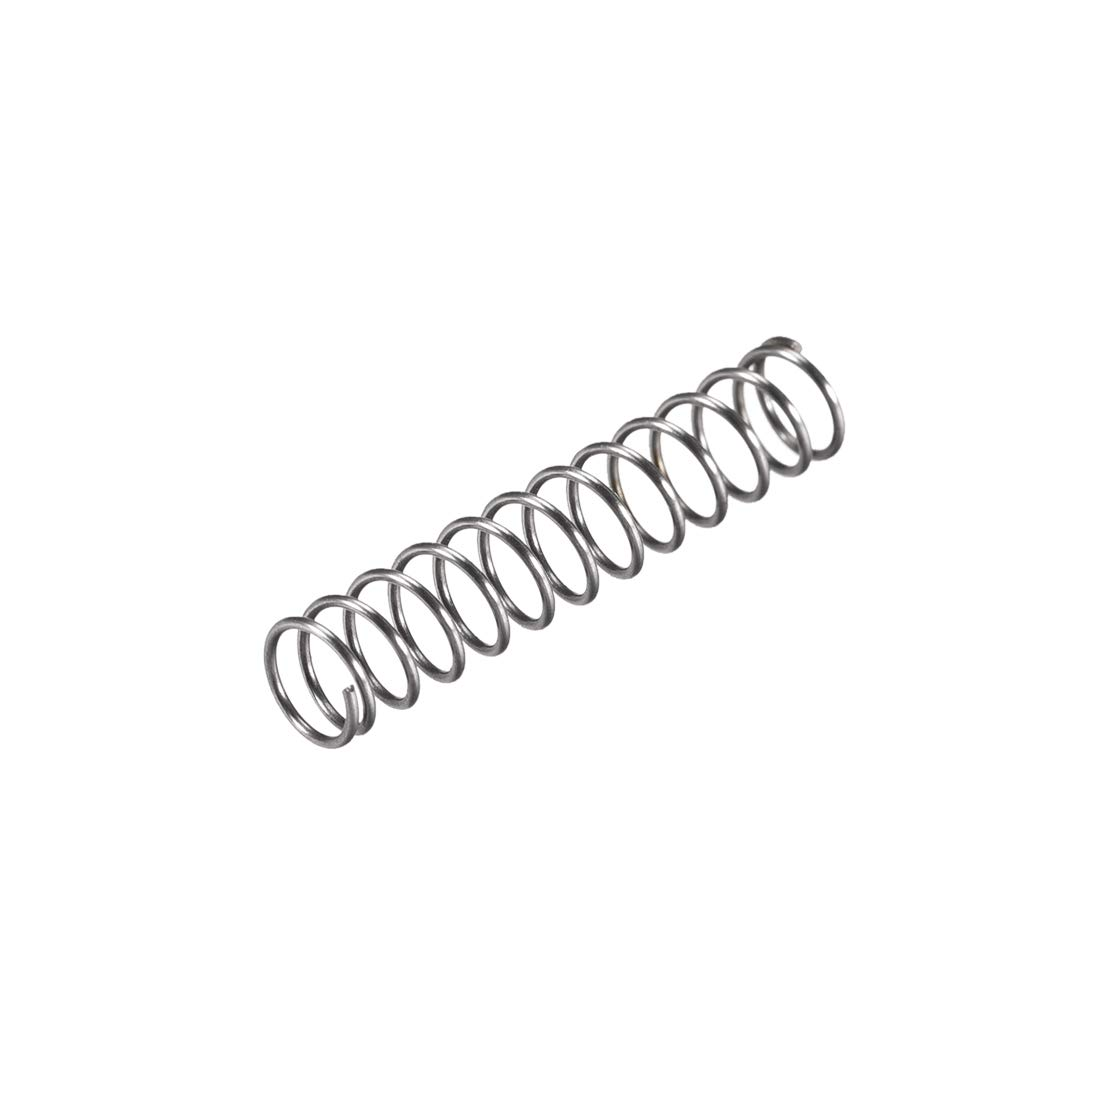 shop uxcell Compression Spring 6mm OD Super beauty product restock quality top 0.6mm Size 16.5mm Compre Wire